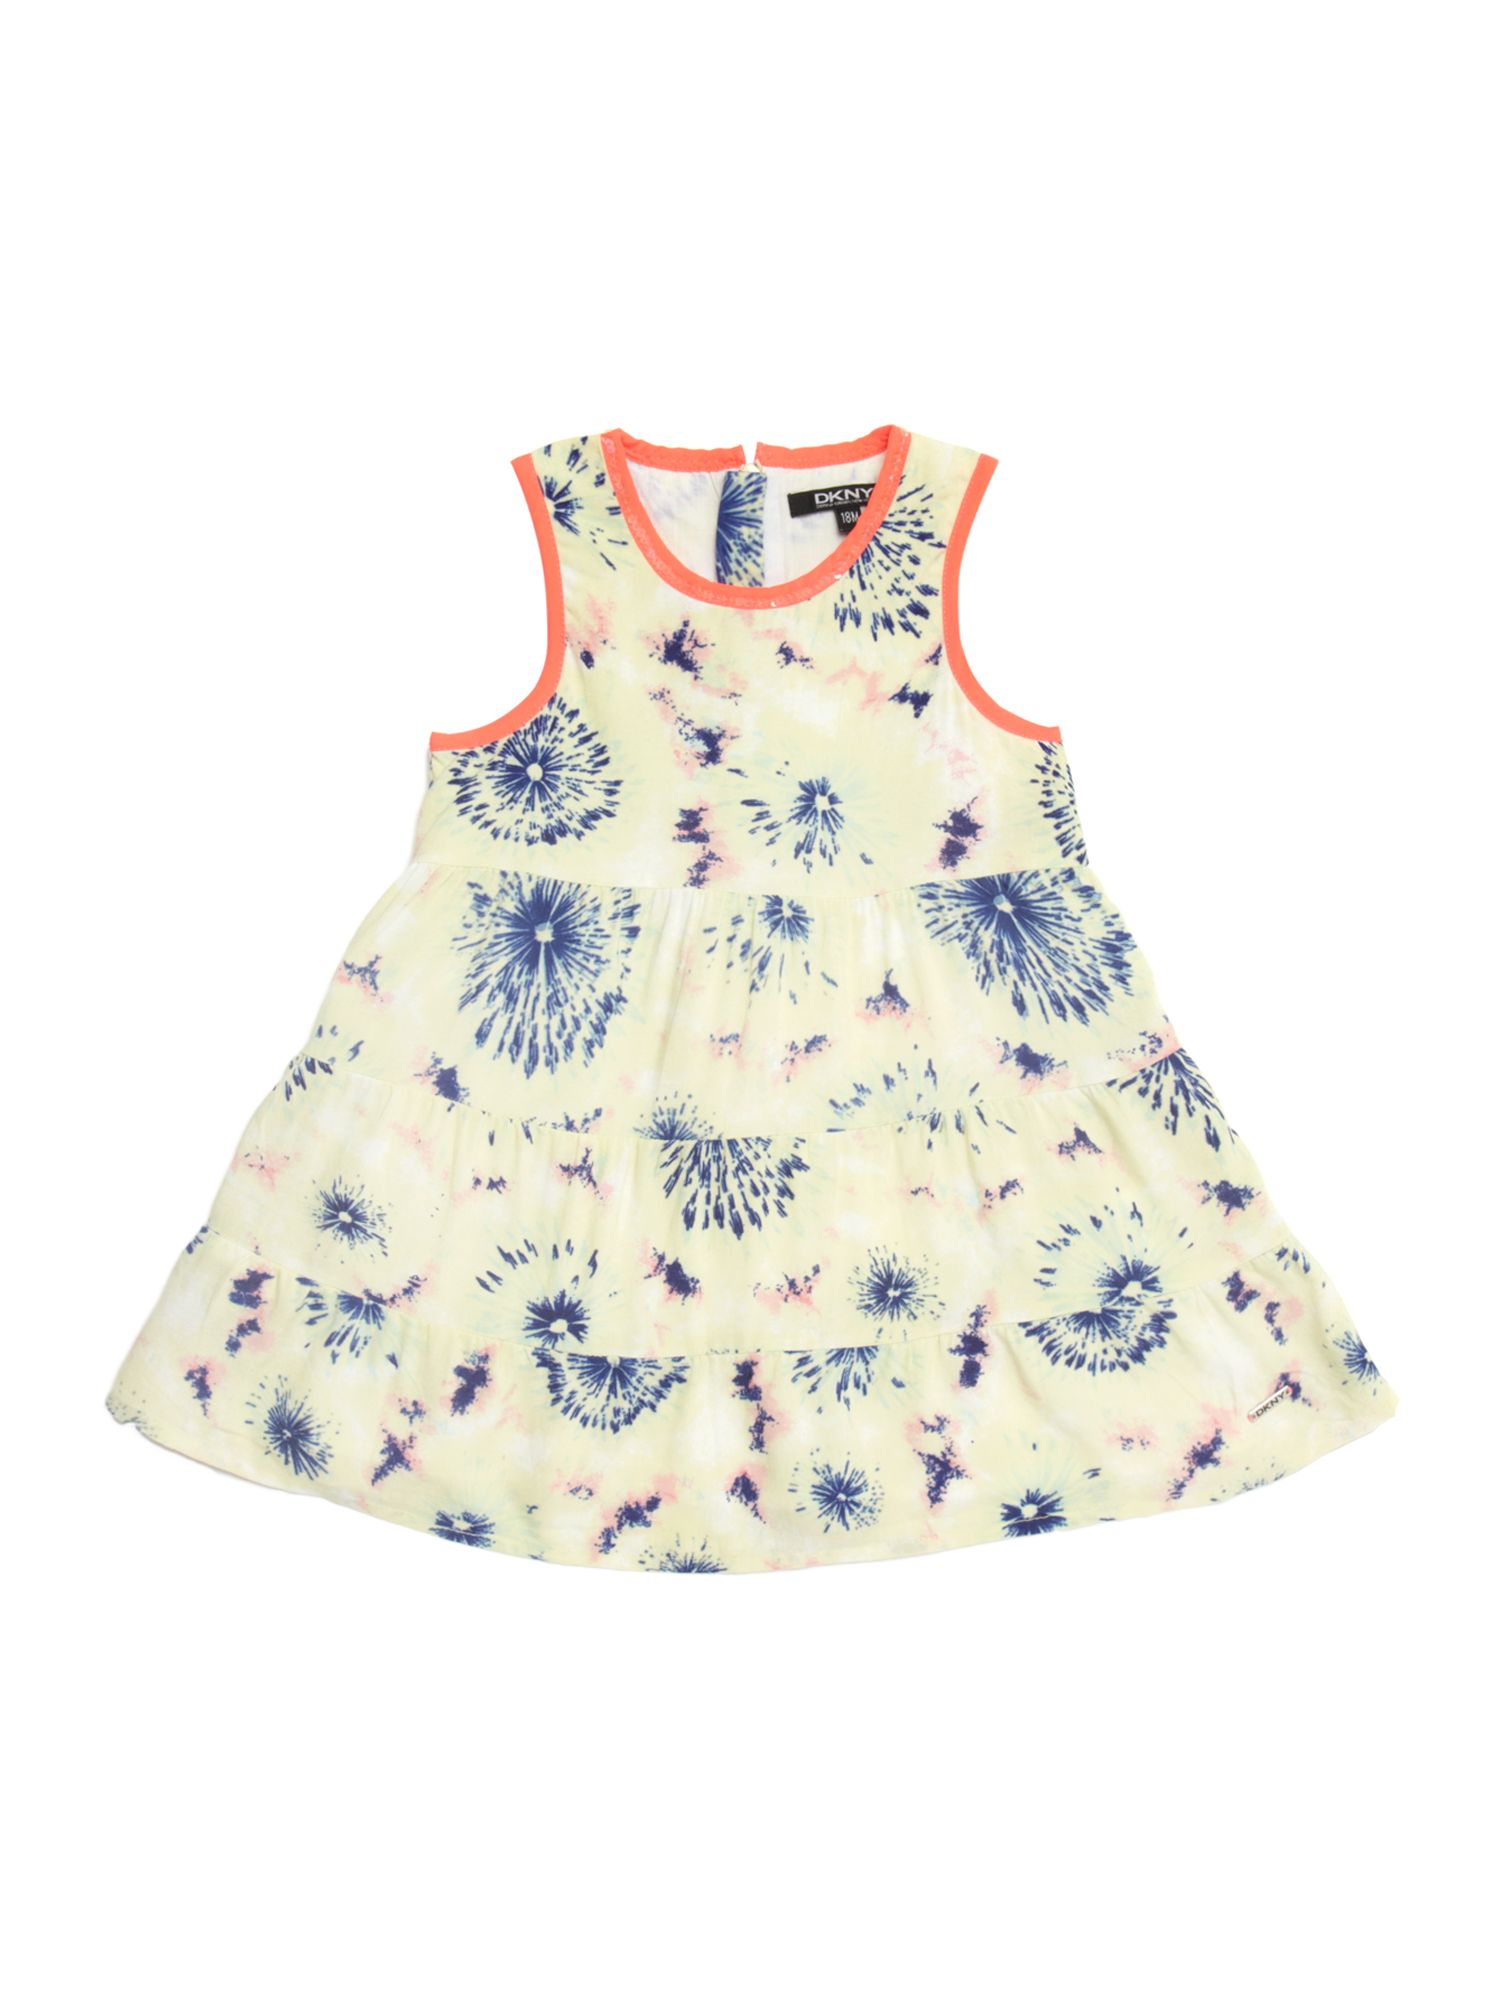 Girls tie dye sleeveless dress